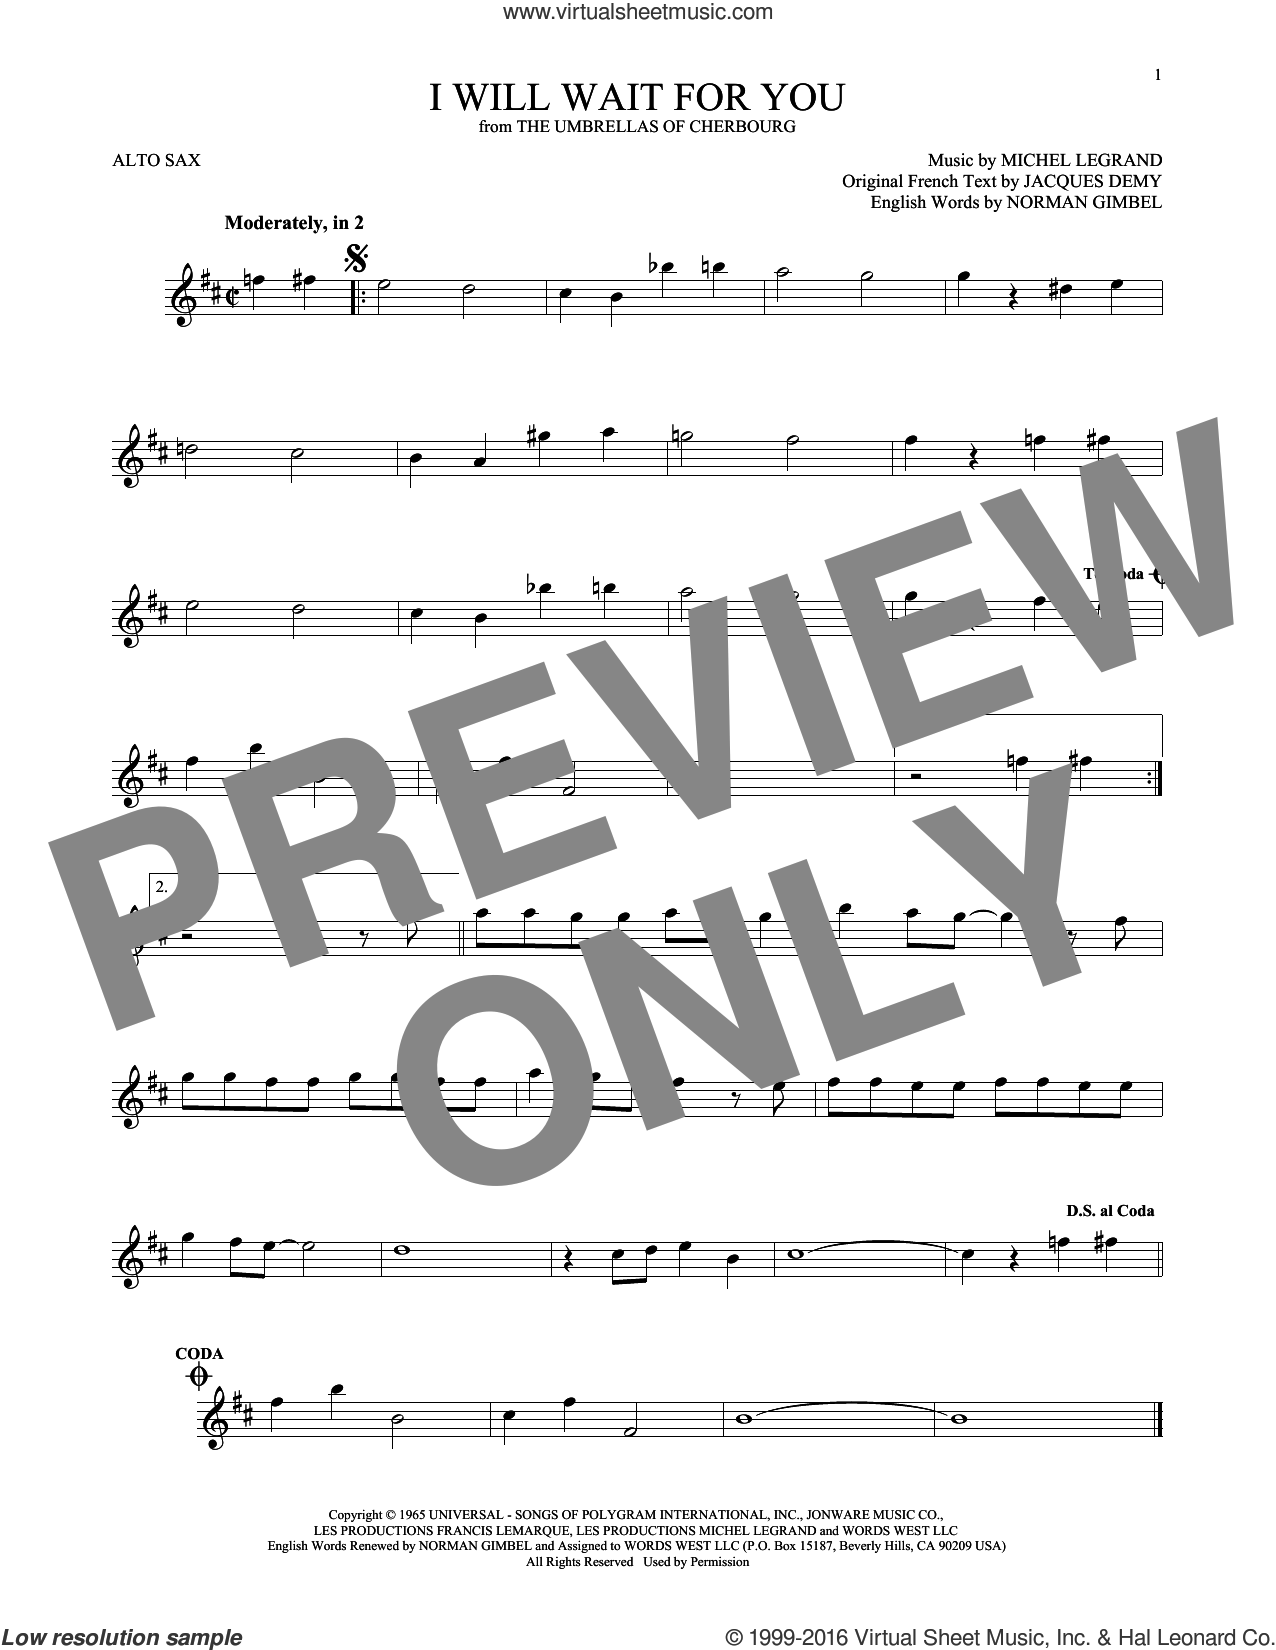 I Will Wait For You sheet music for alto saxophone solo ( Sax) by Norman Gimbel, Jacques Demy and Michel Legrand. Score Image Preview.